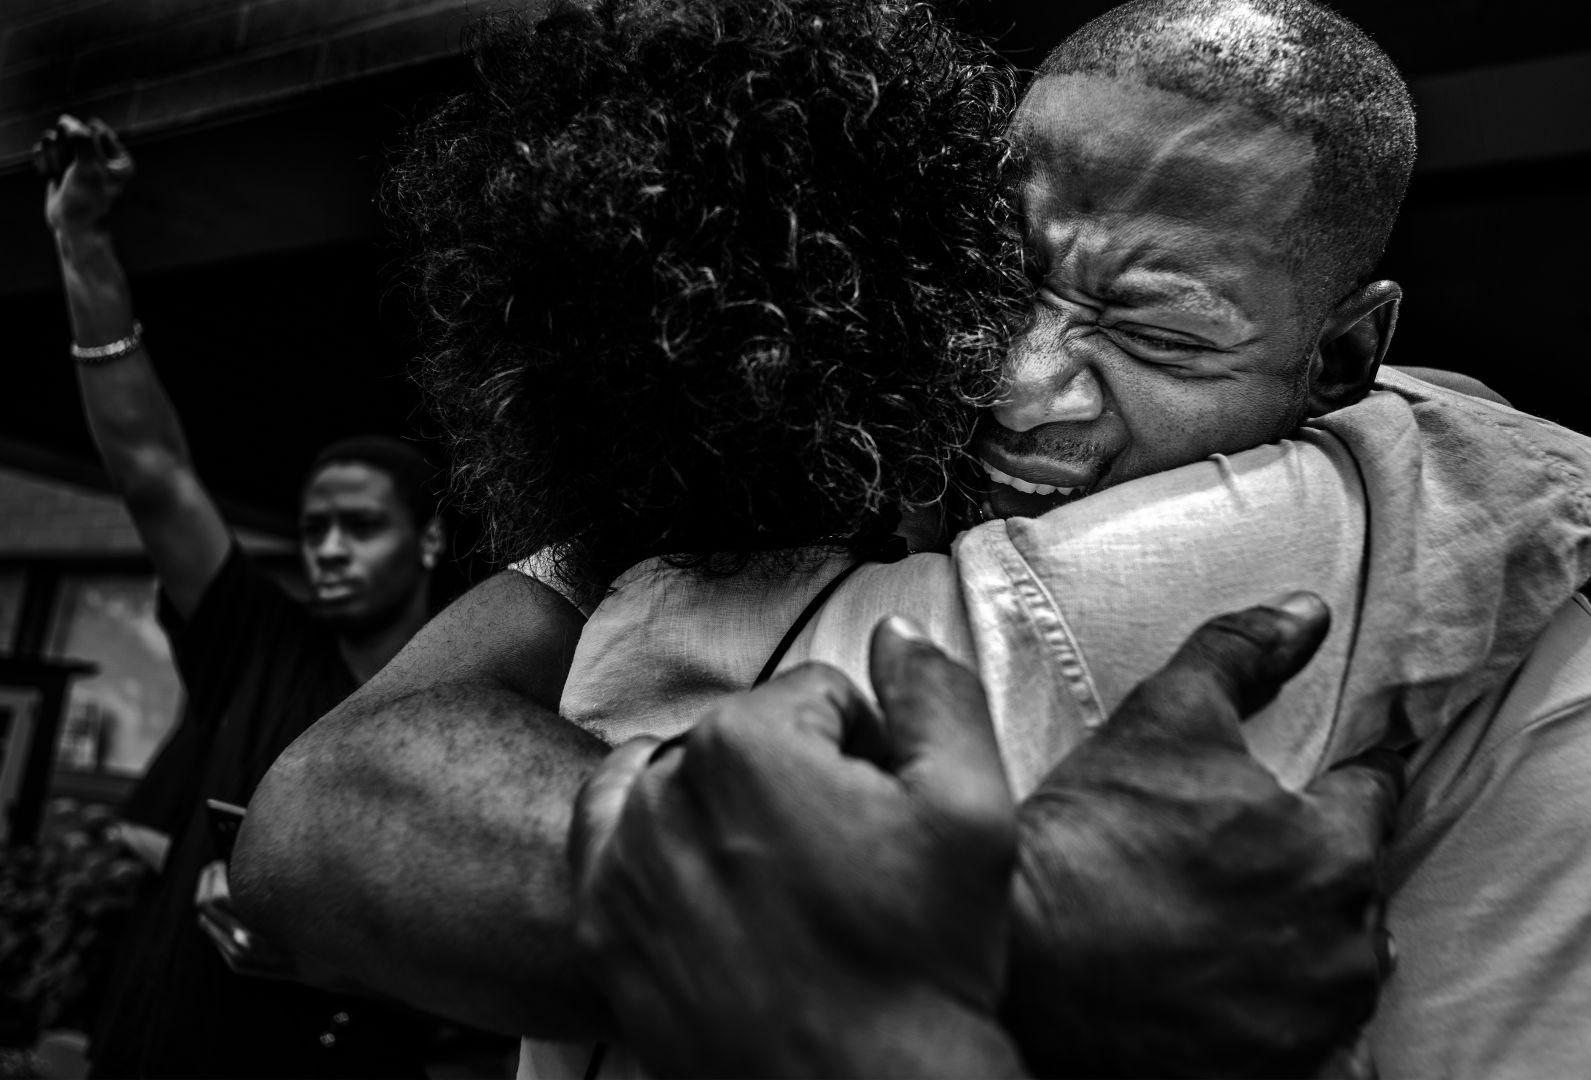 © Richard Tsong-Taatarii, 2nd prize singles, World Press Photo Contest